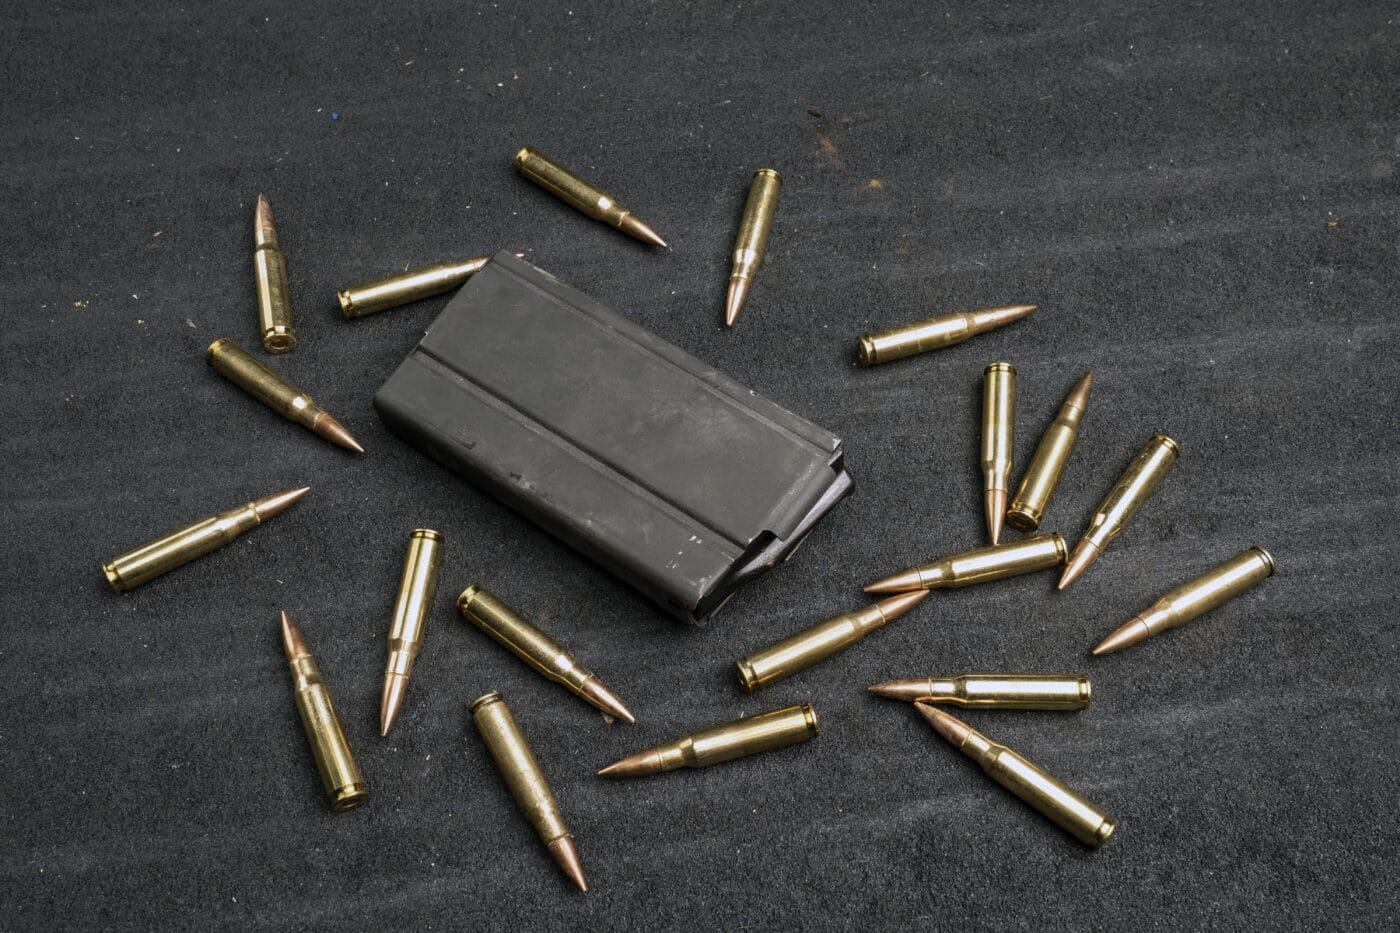 M1A magazine with ammo